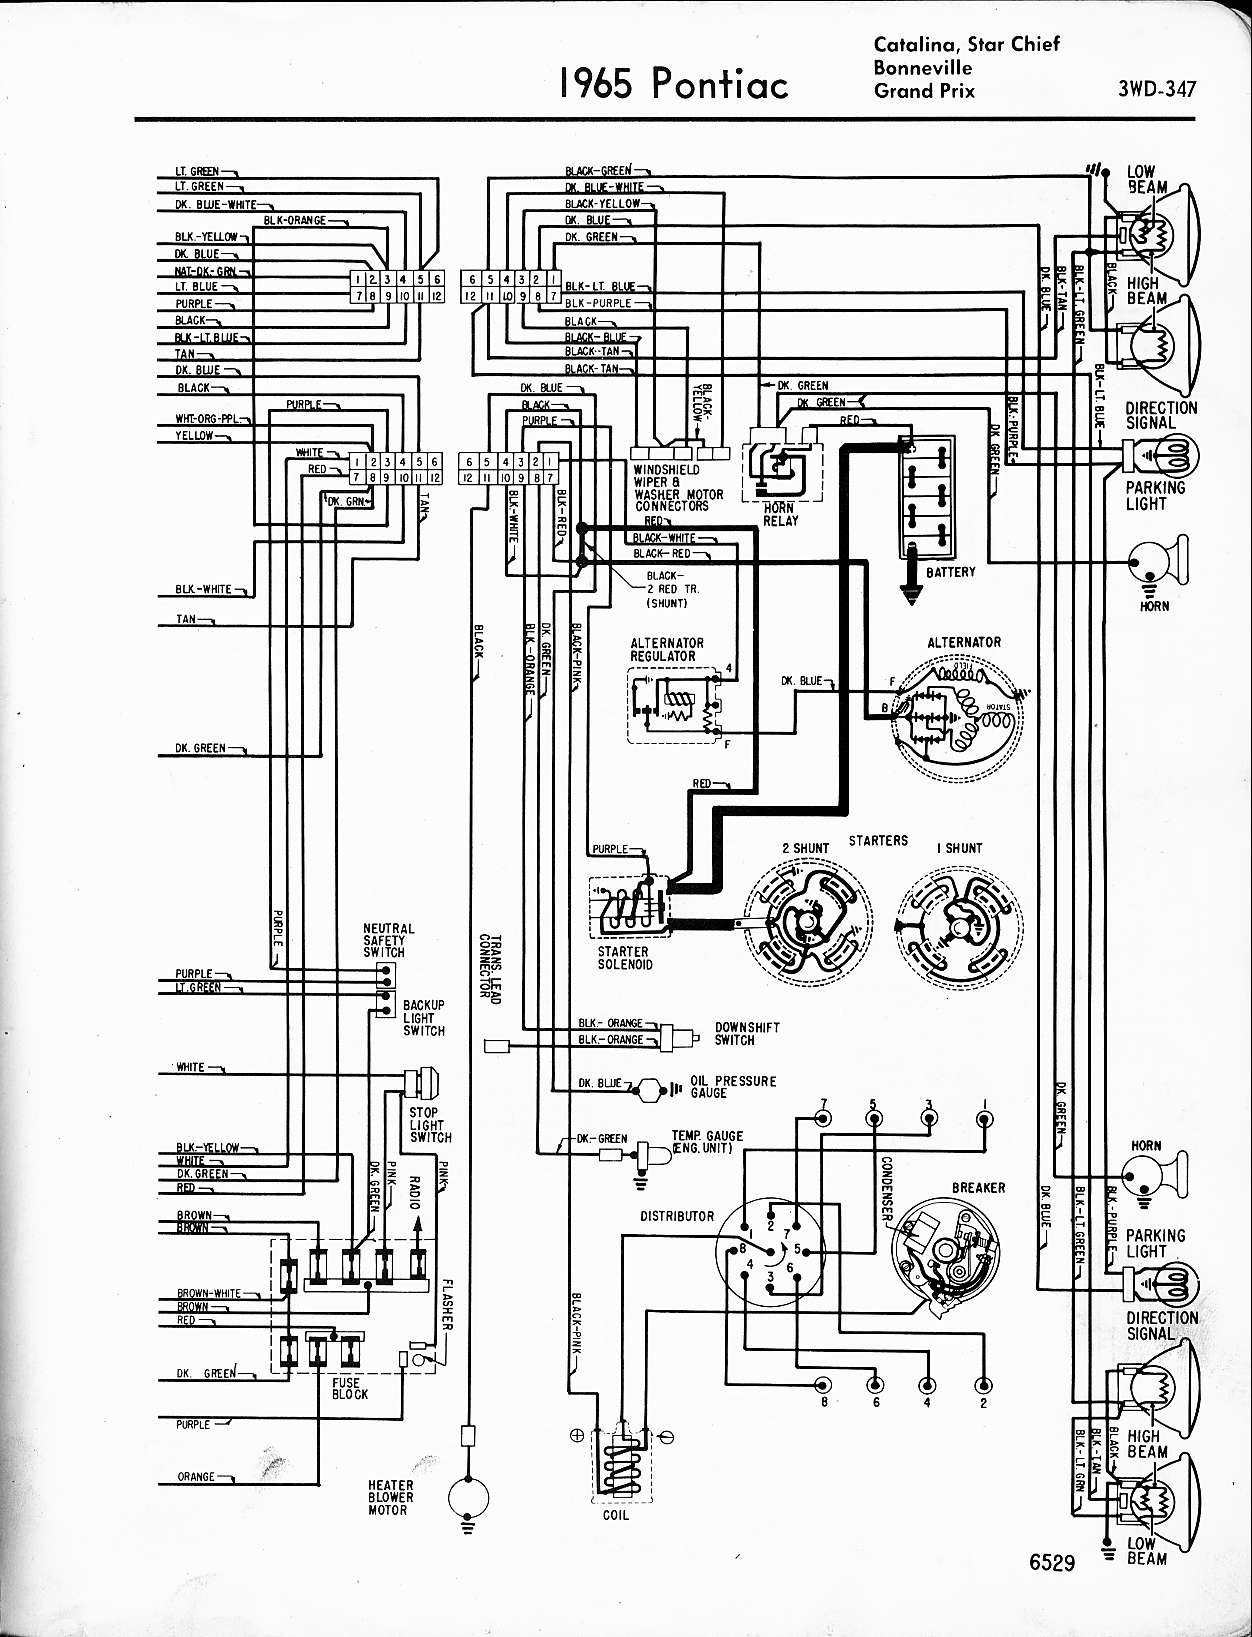 wallace racing wiring diagrams rh wallaceracing com 04-08 pontiac grand prix wiring diagrams 1978 pontiac grand prix wiring diagrams